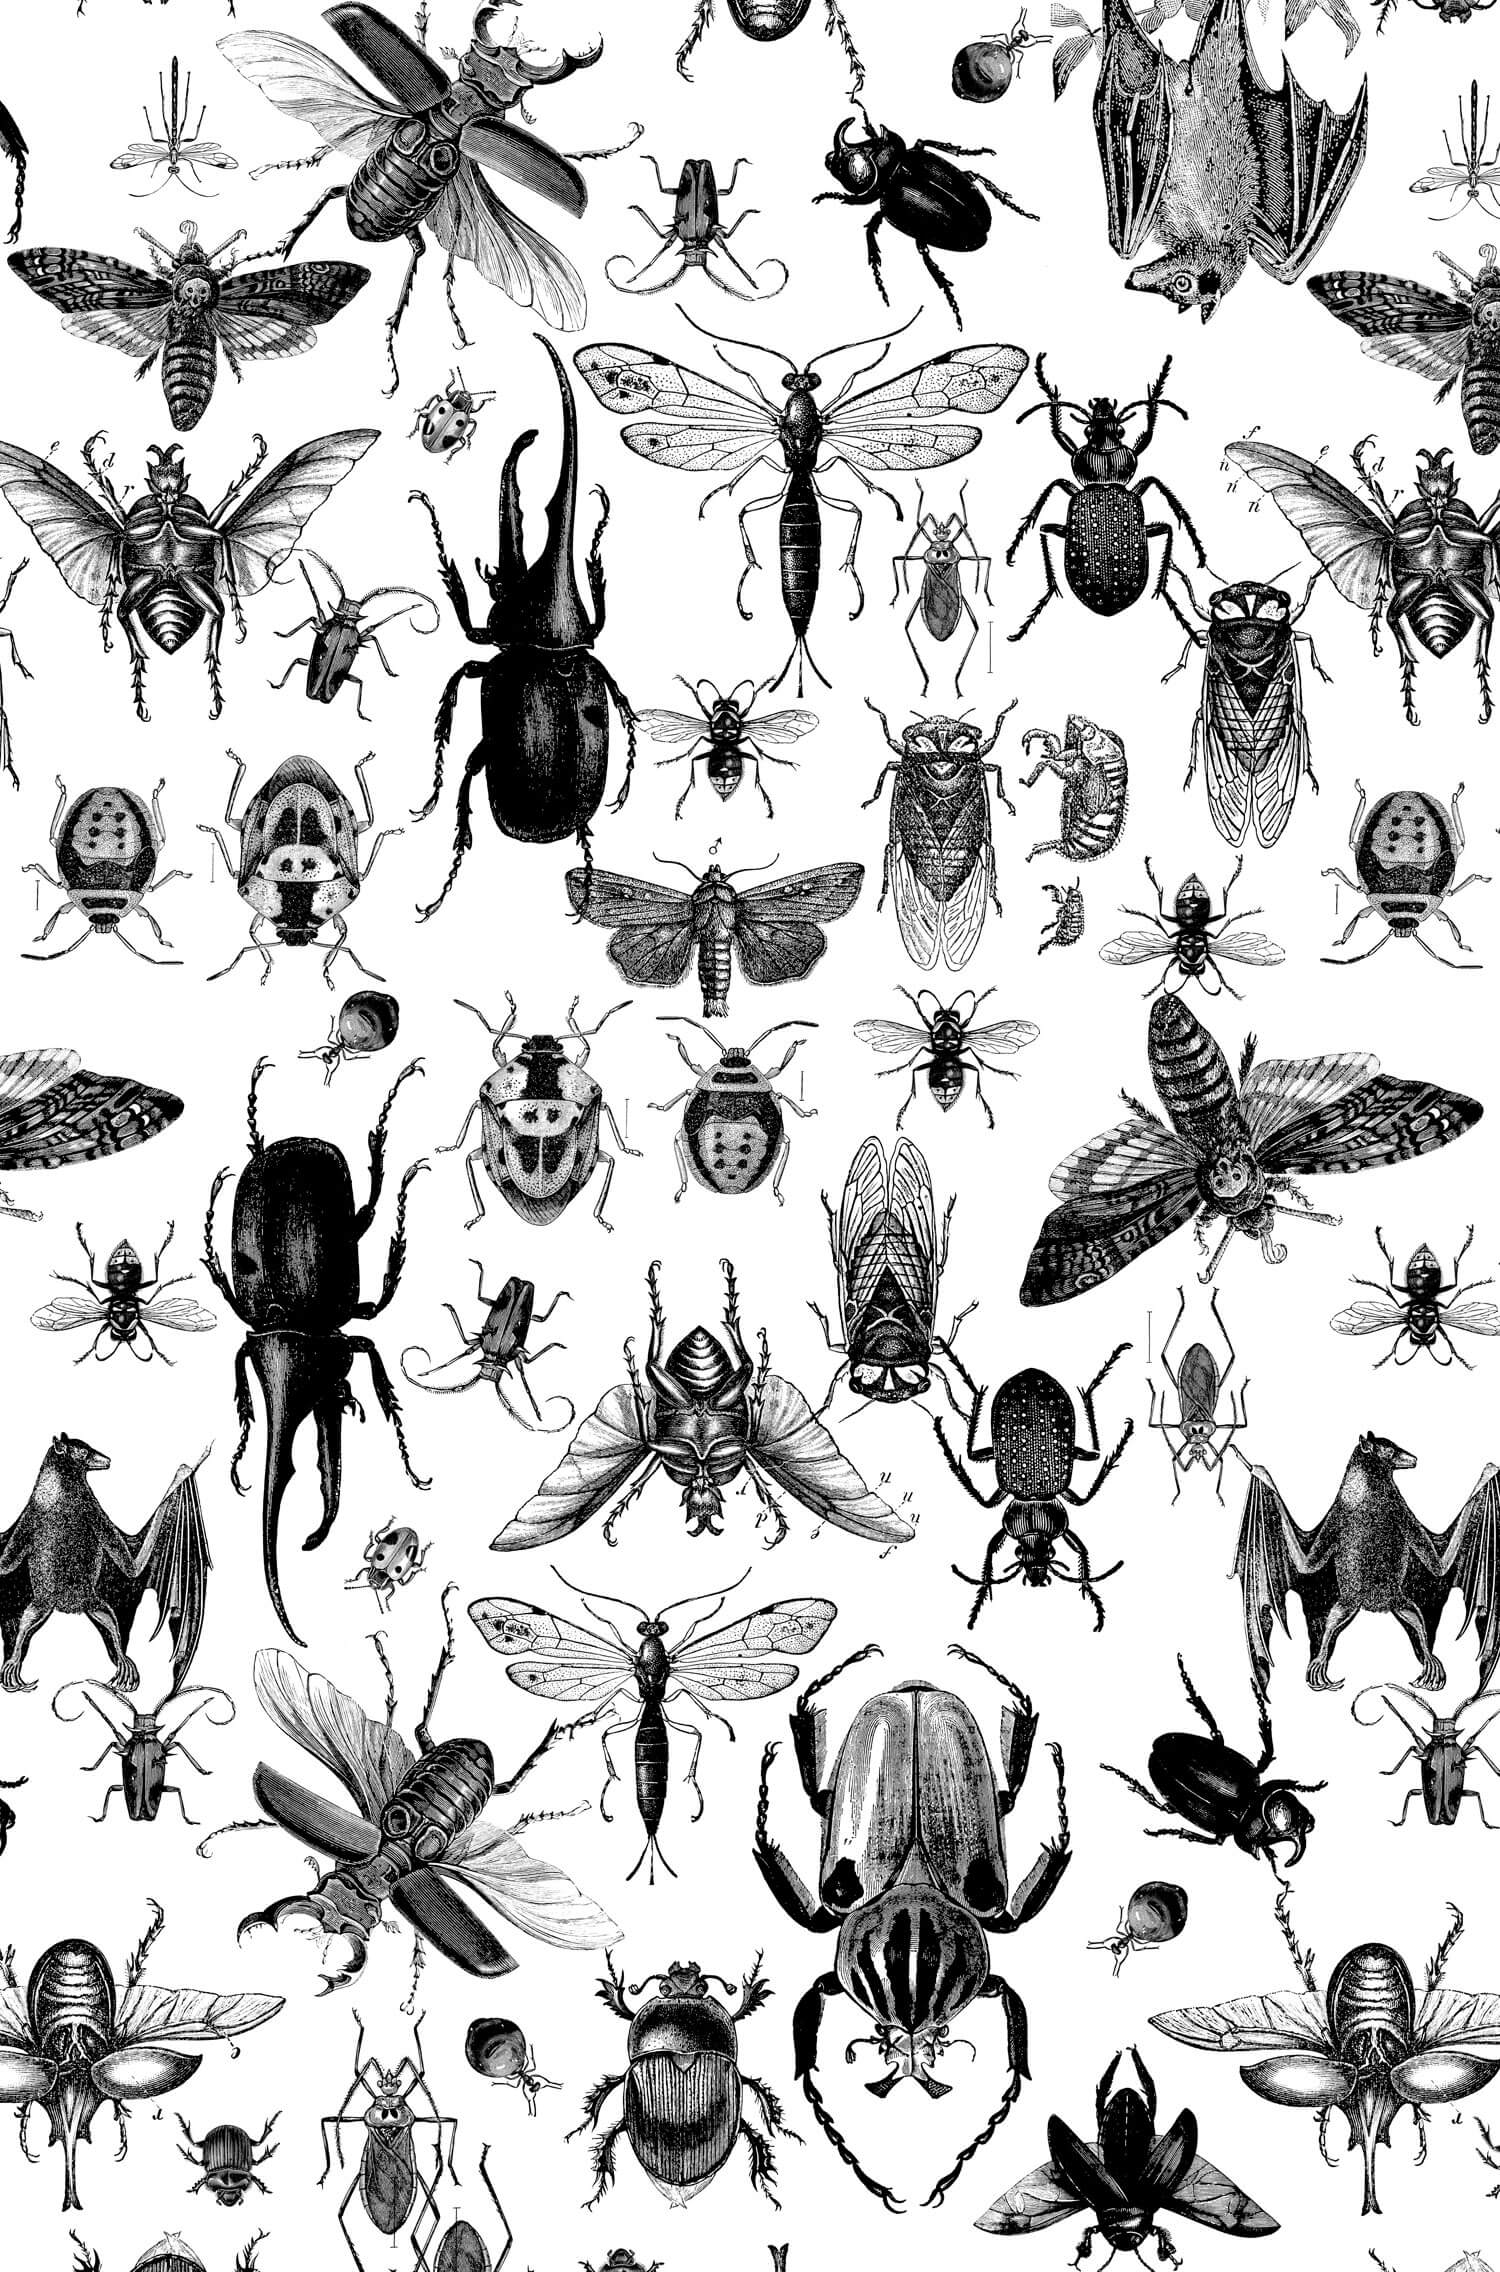 olga_mulica_insect_pattern_01